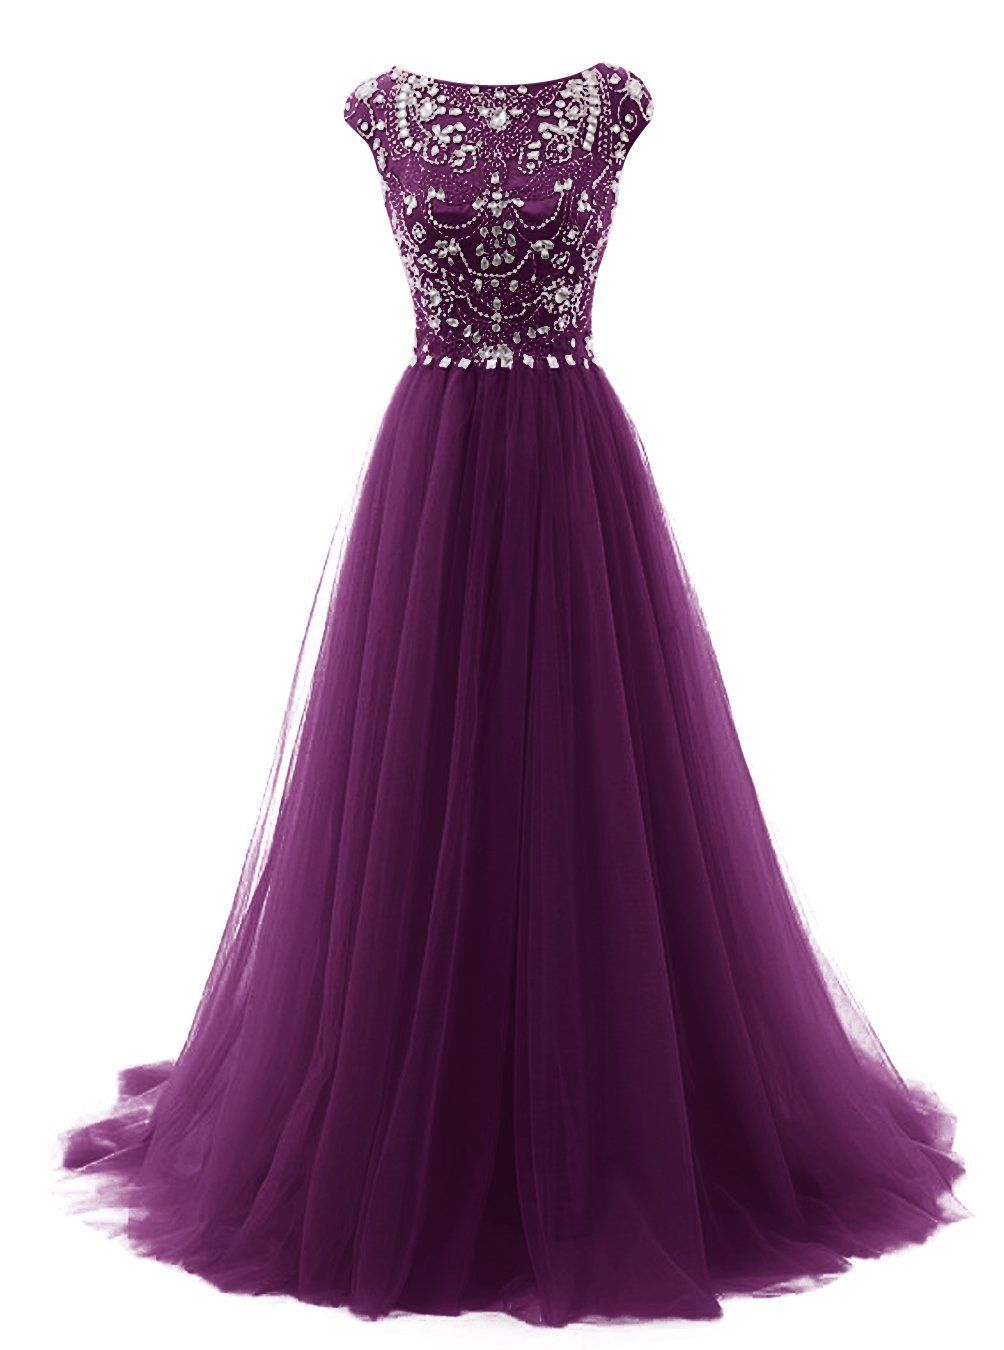 Tideclothes Long Beads Prom Dress Tulle Cap Sleeves Evening Dress ...